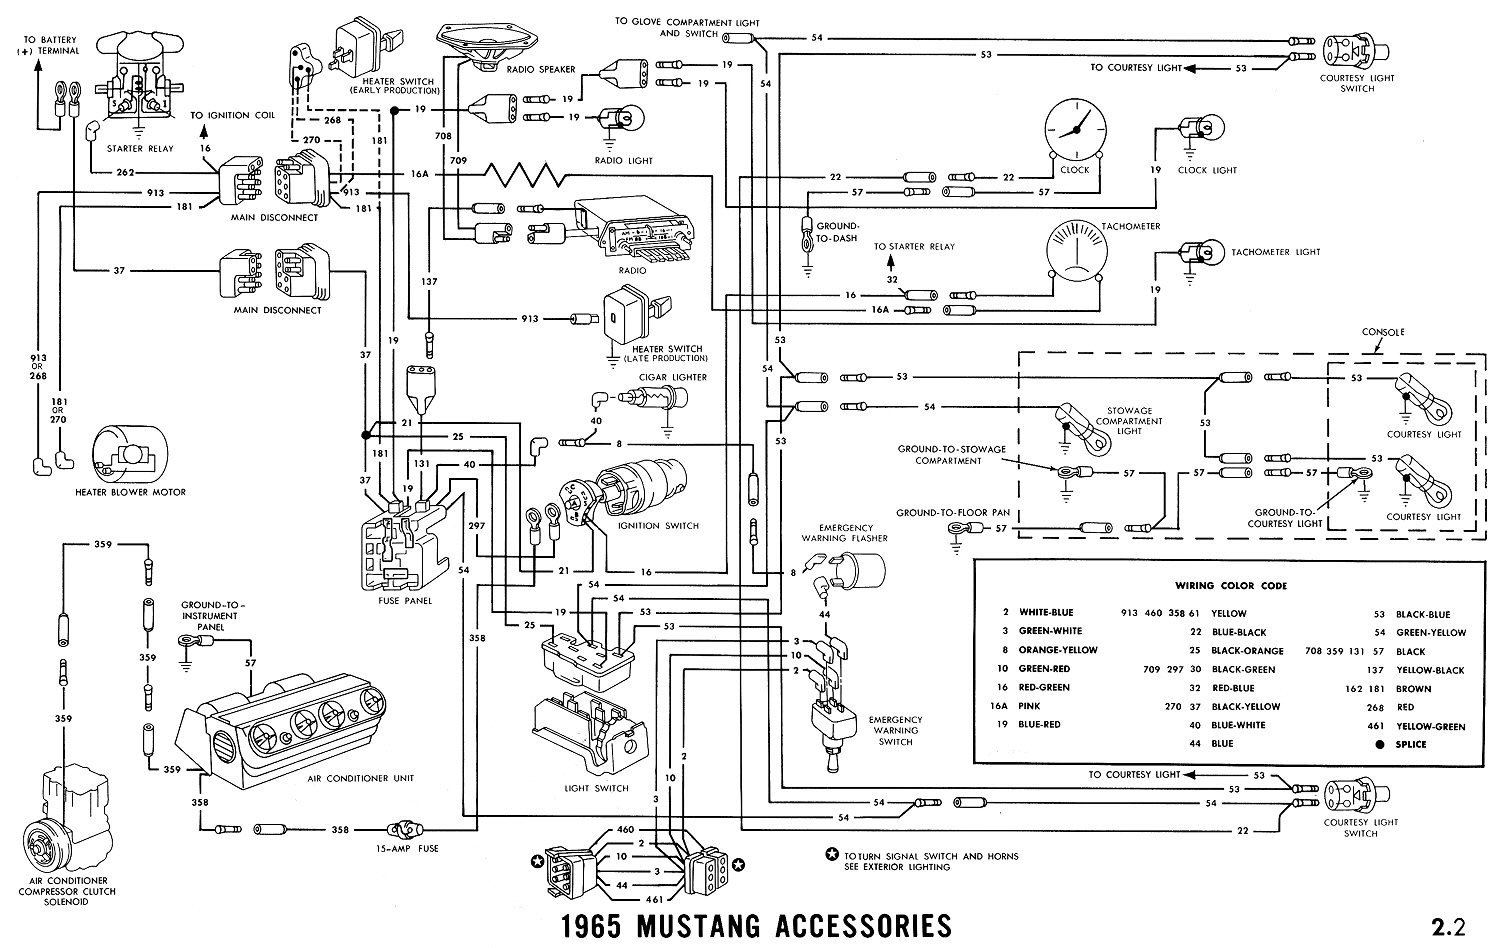 1965 Mustang Wiring Diagram Pdf List Of Schematic Circuit Volvo Penta Aq260 Harness 1969 Dash Simple Rh David Huggett Co Uk